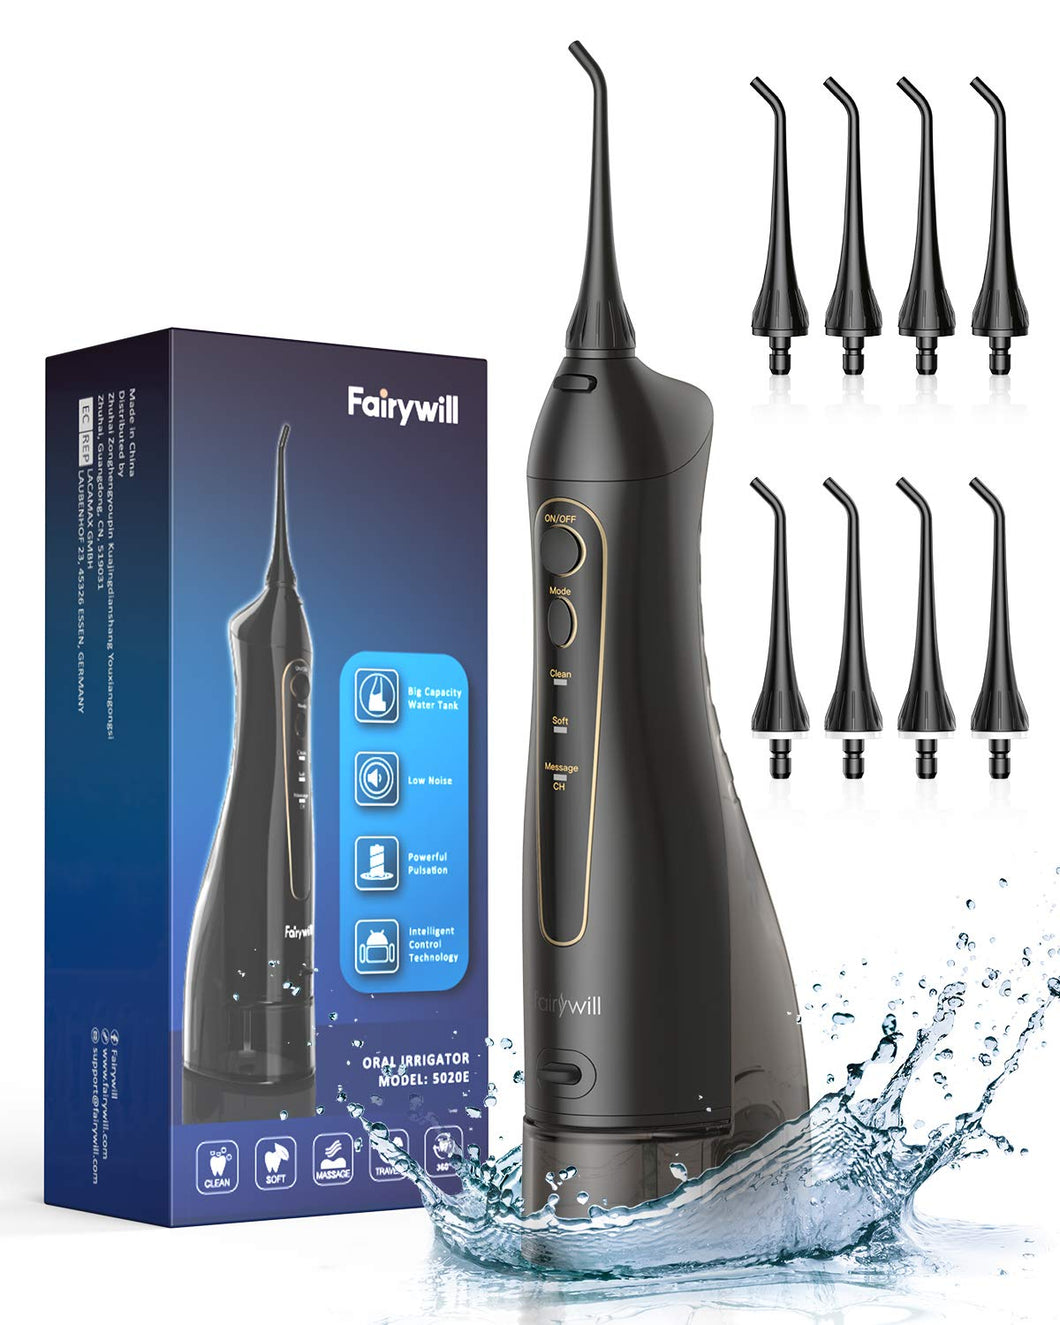 Water Flossers for Teeth, Fairywill 300ML Cordless Dental Oral Irrigator, 3 Modes and 8 Jet Tips, IPX7 Waterproof, USB Charged for 21-Days Use, Oral Irrigator for Travel, Office